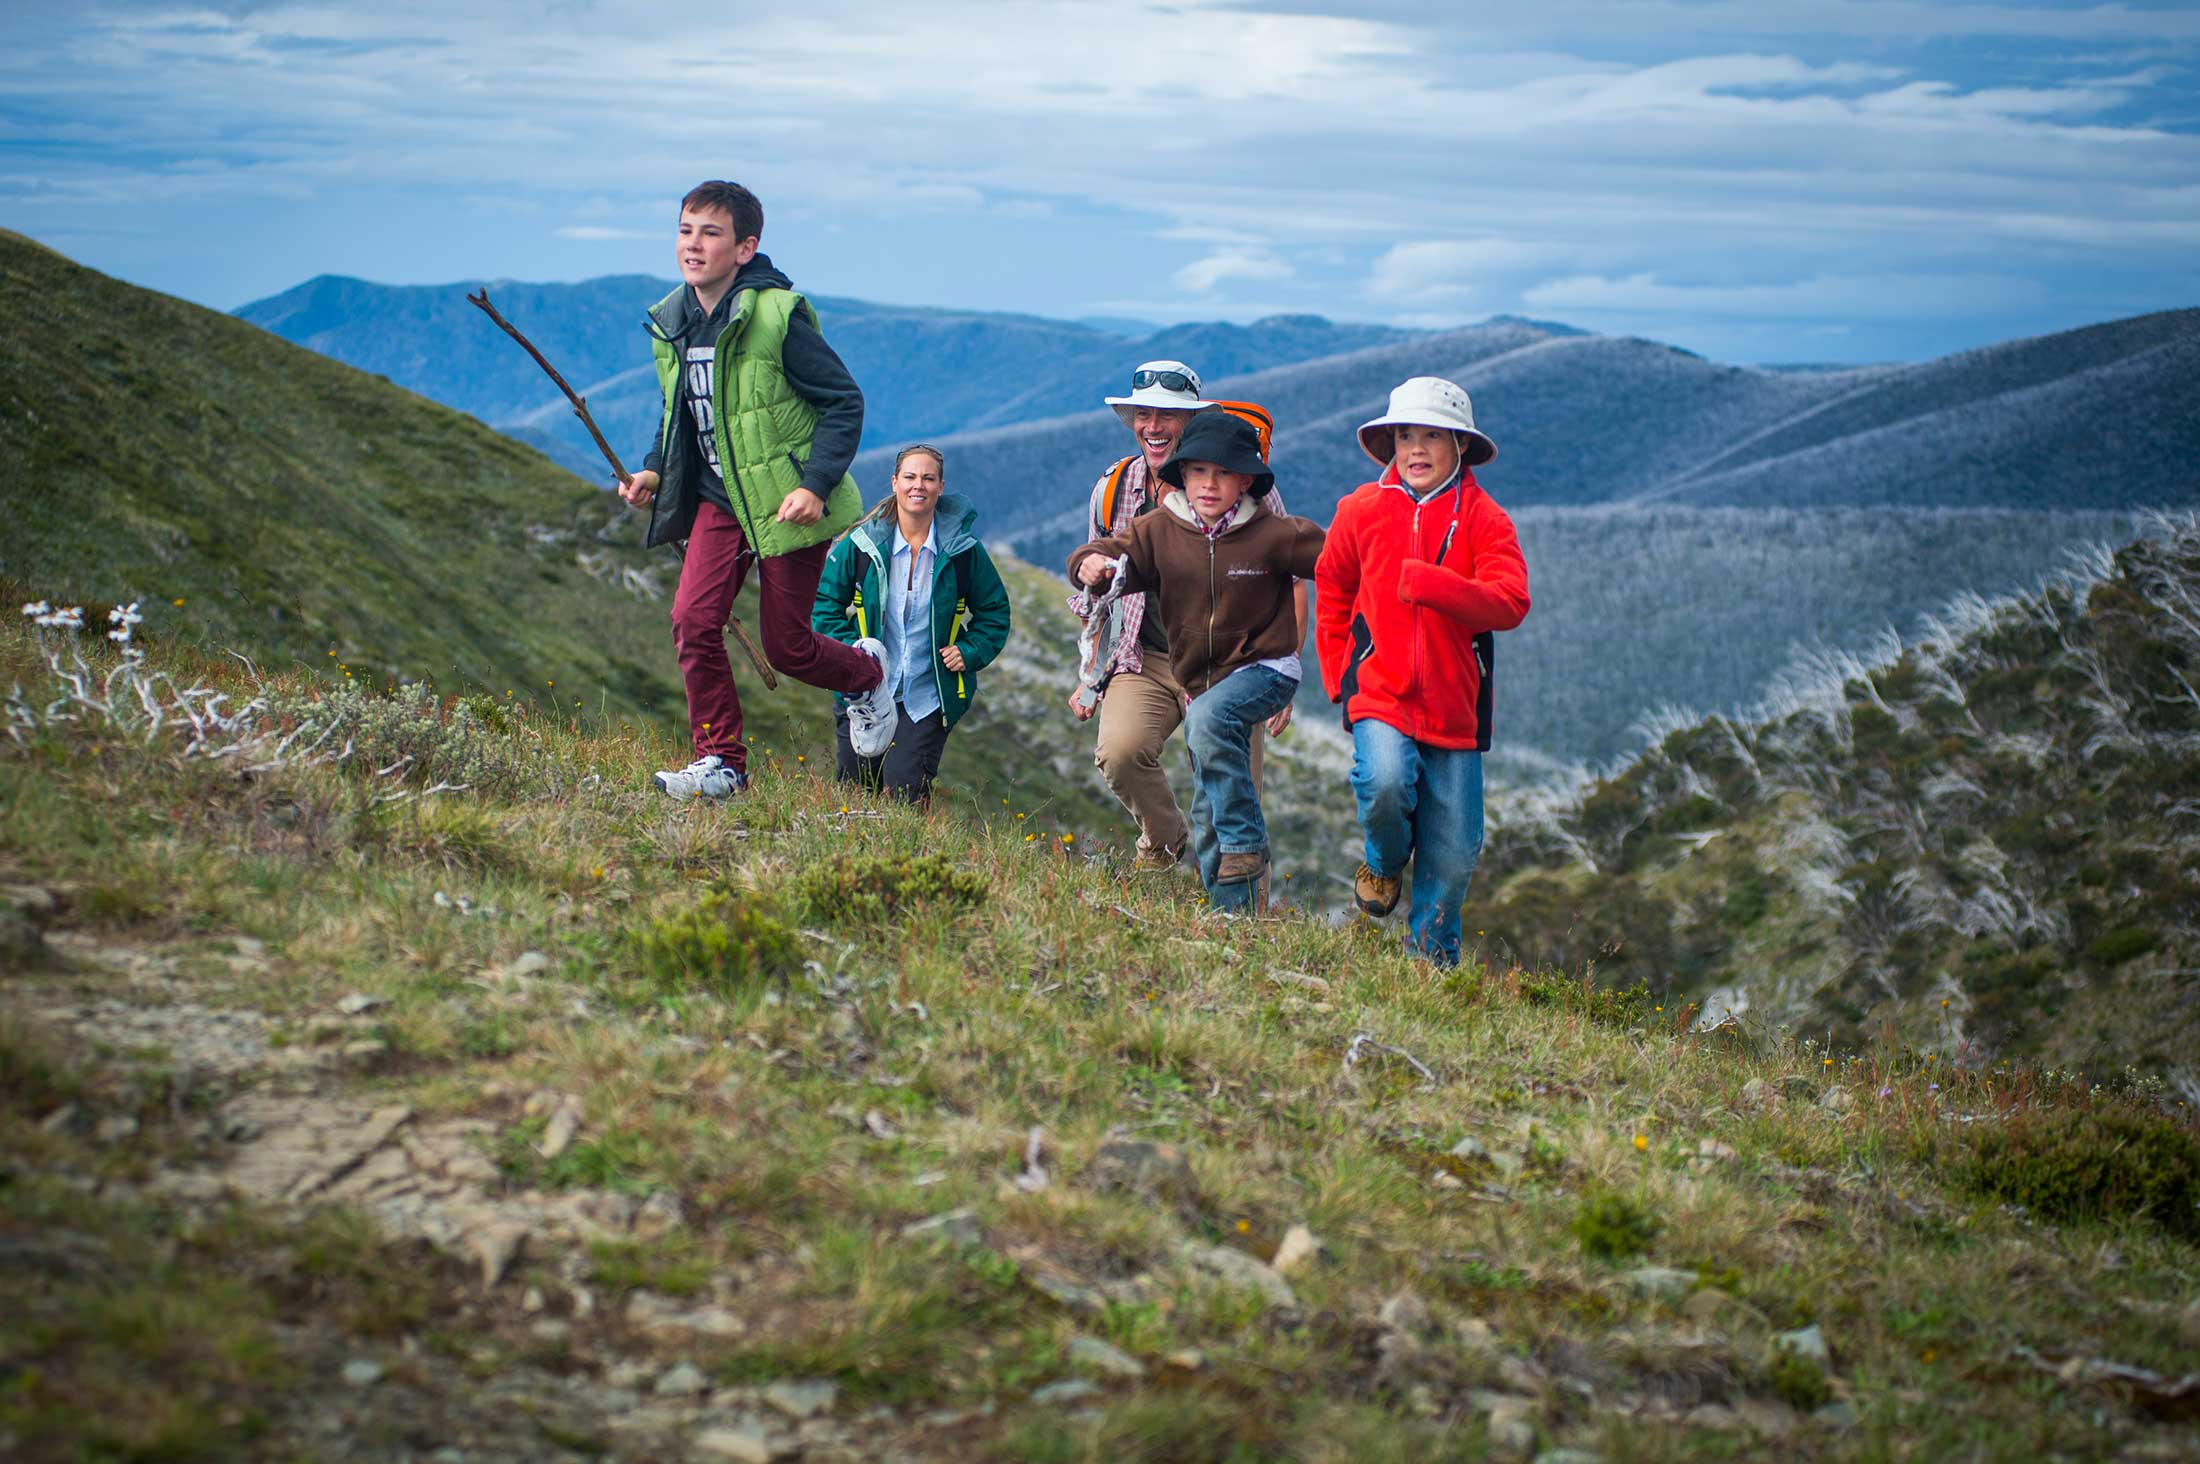 Children and their parents running up a hill on Mt Hotham in the Autumn